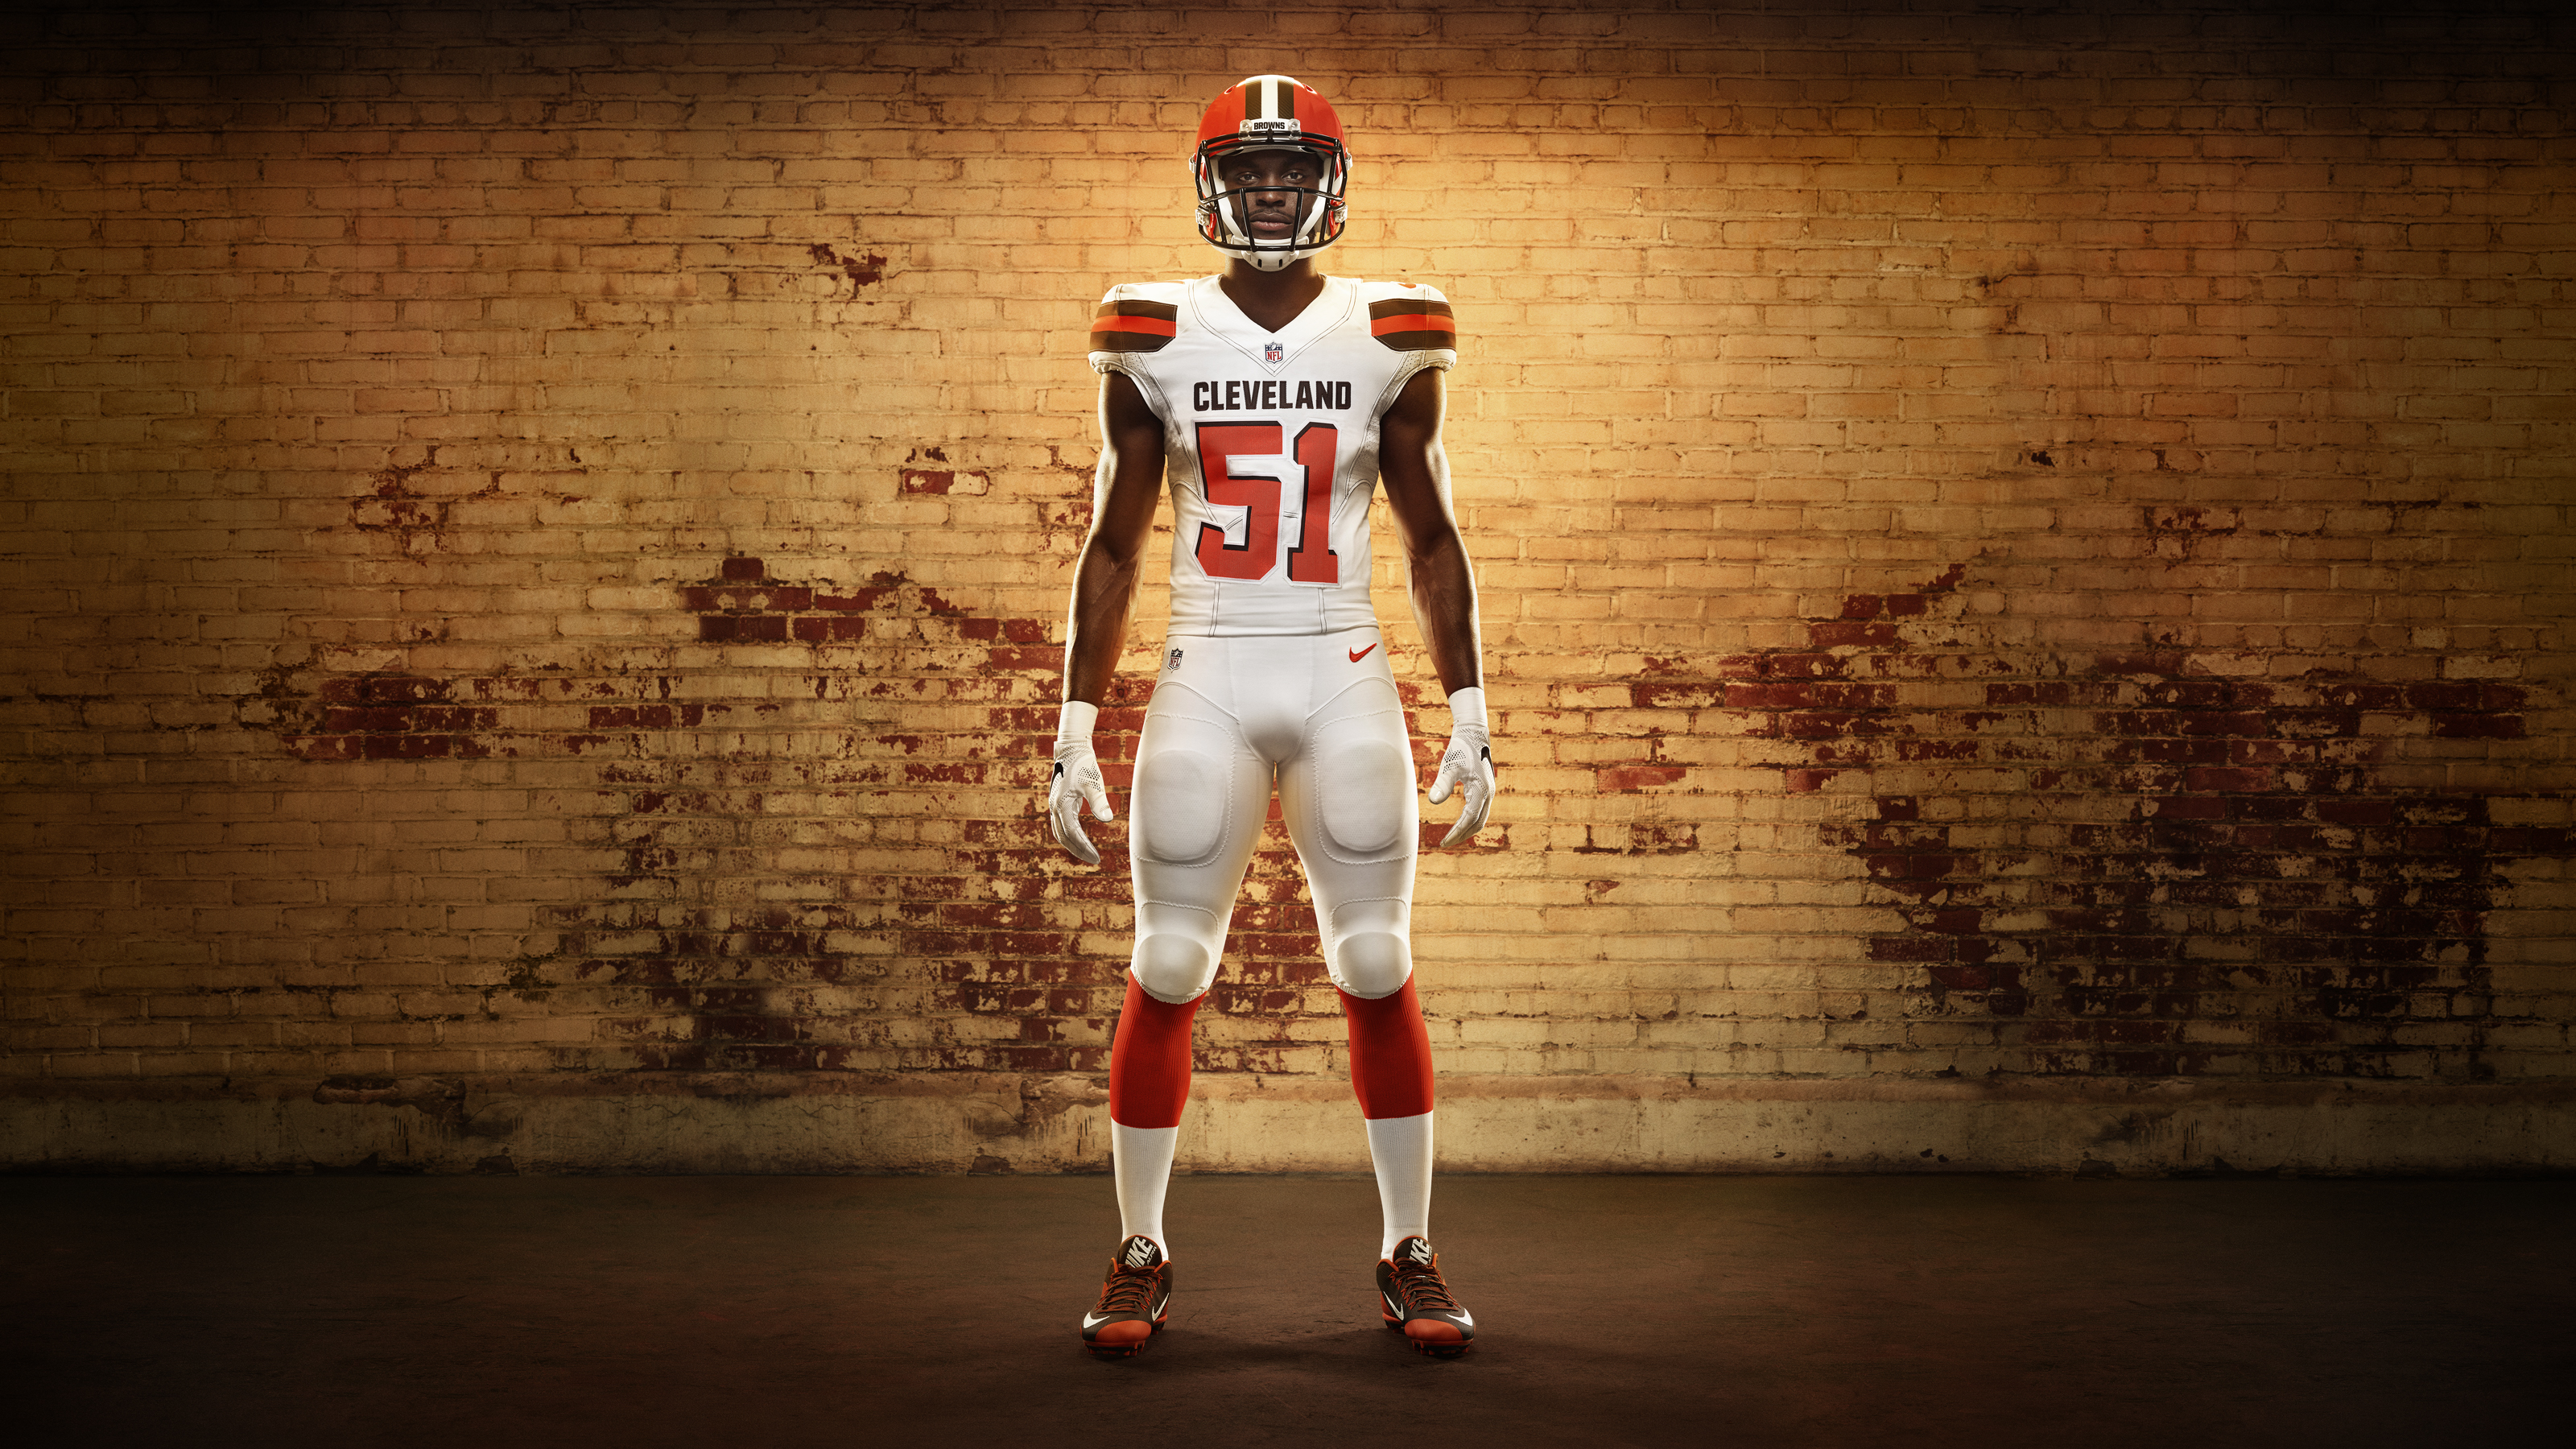 Nike News - Cleveland Browns Celebrate Their Fans and Team History ...